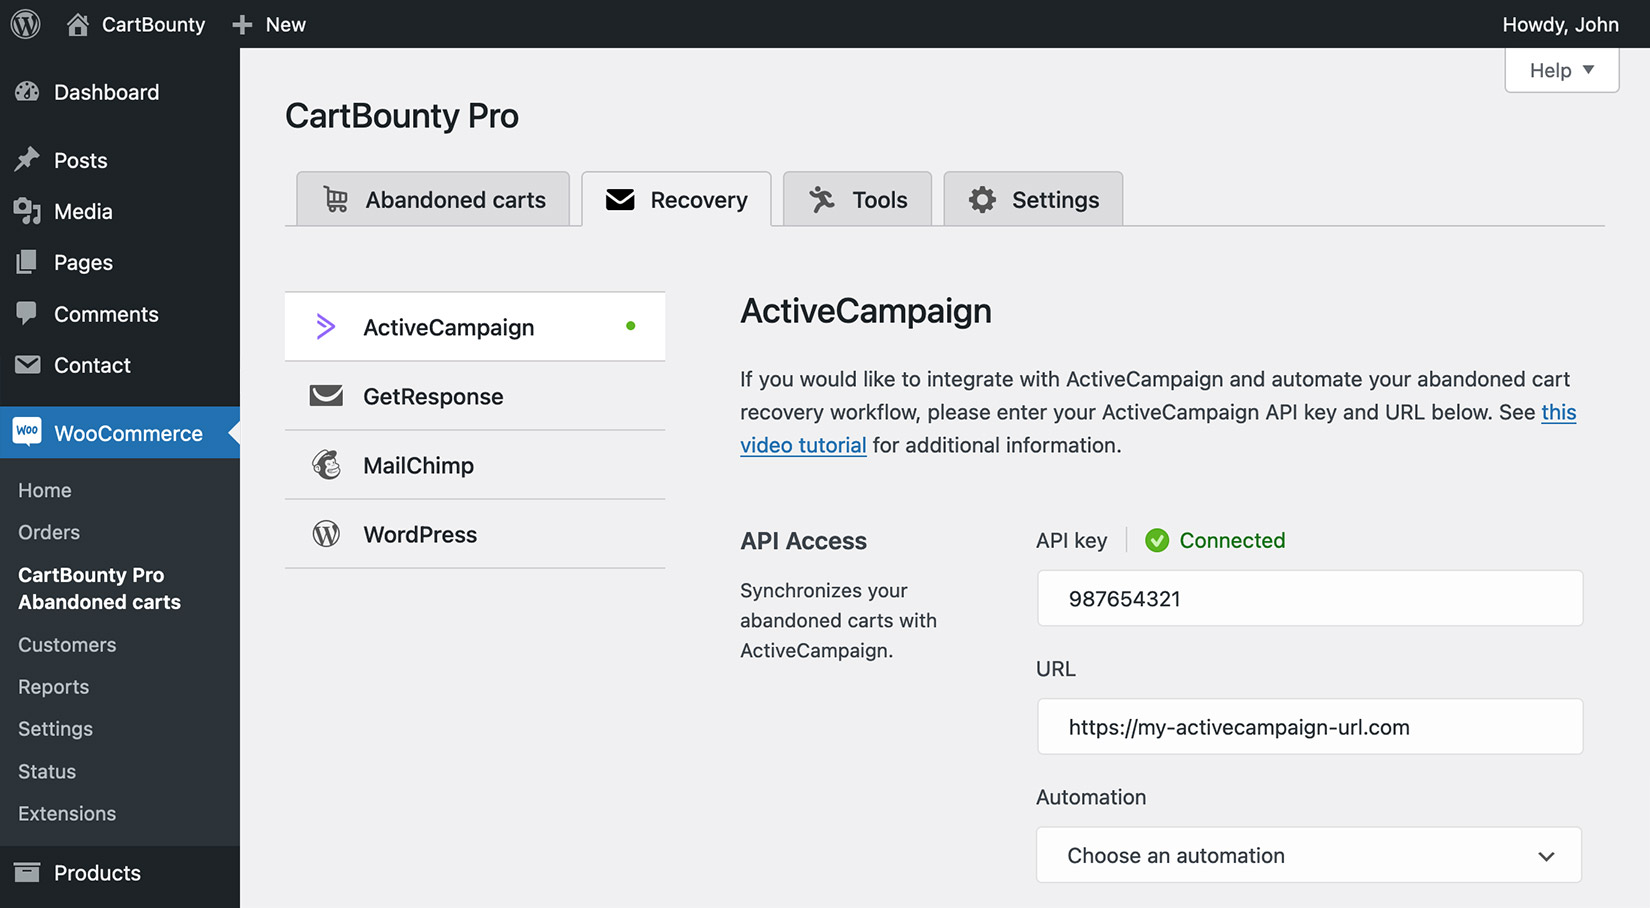 Successful integration with ActiveCampaign